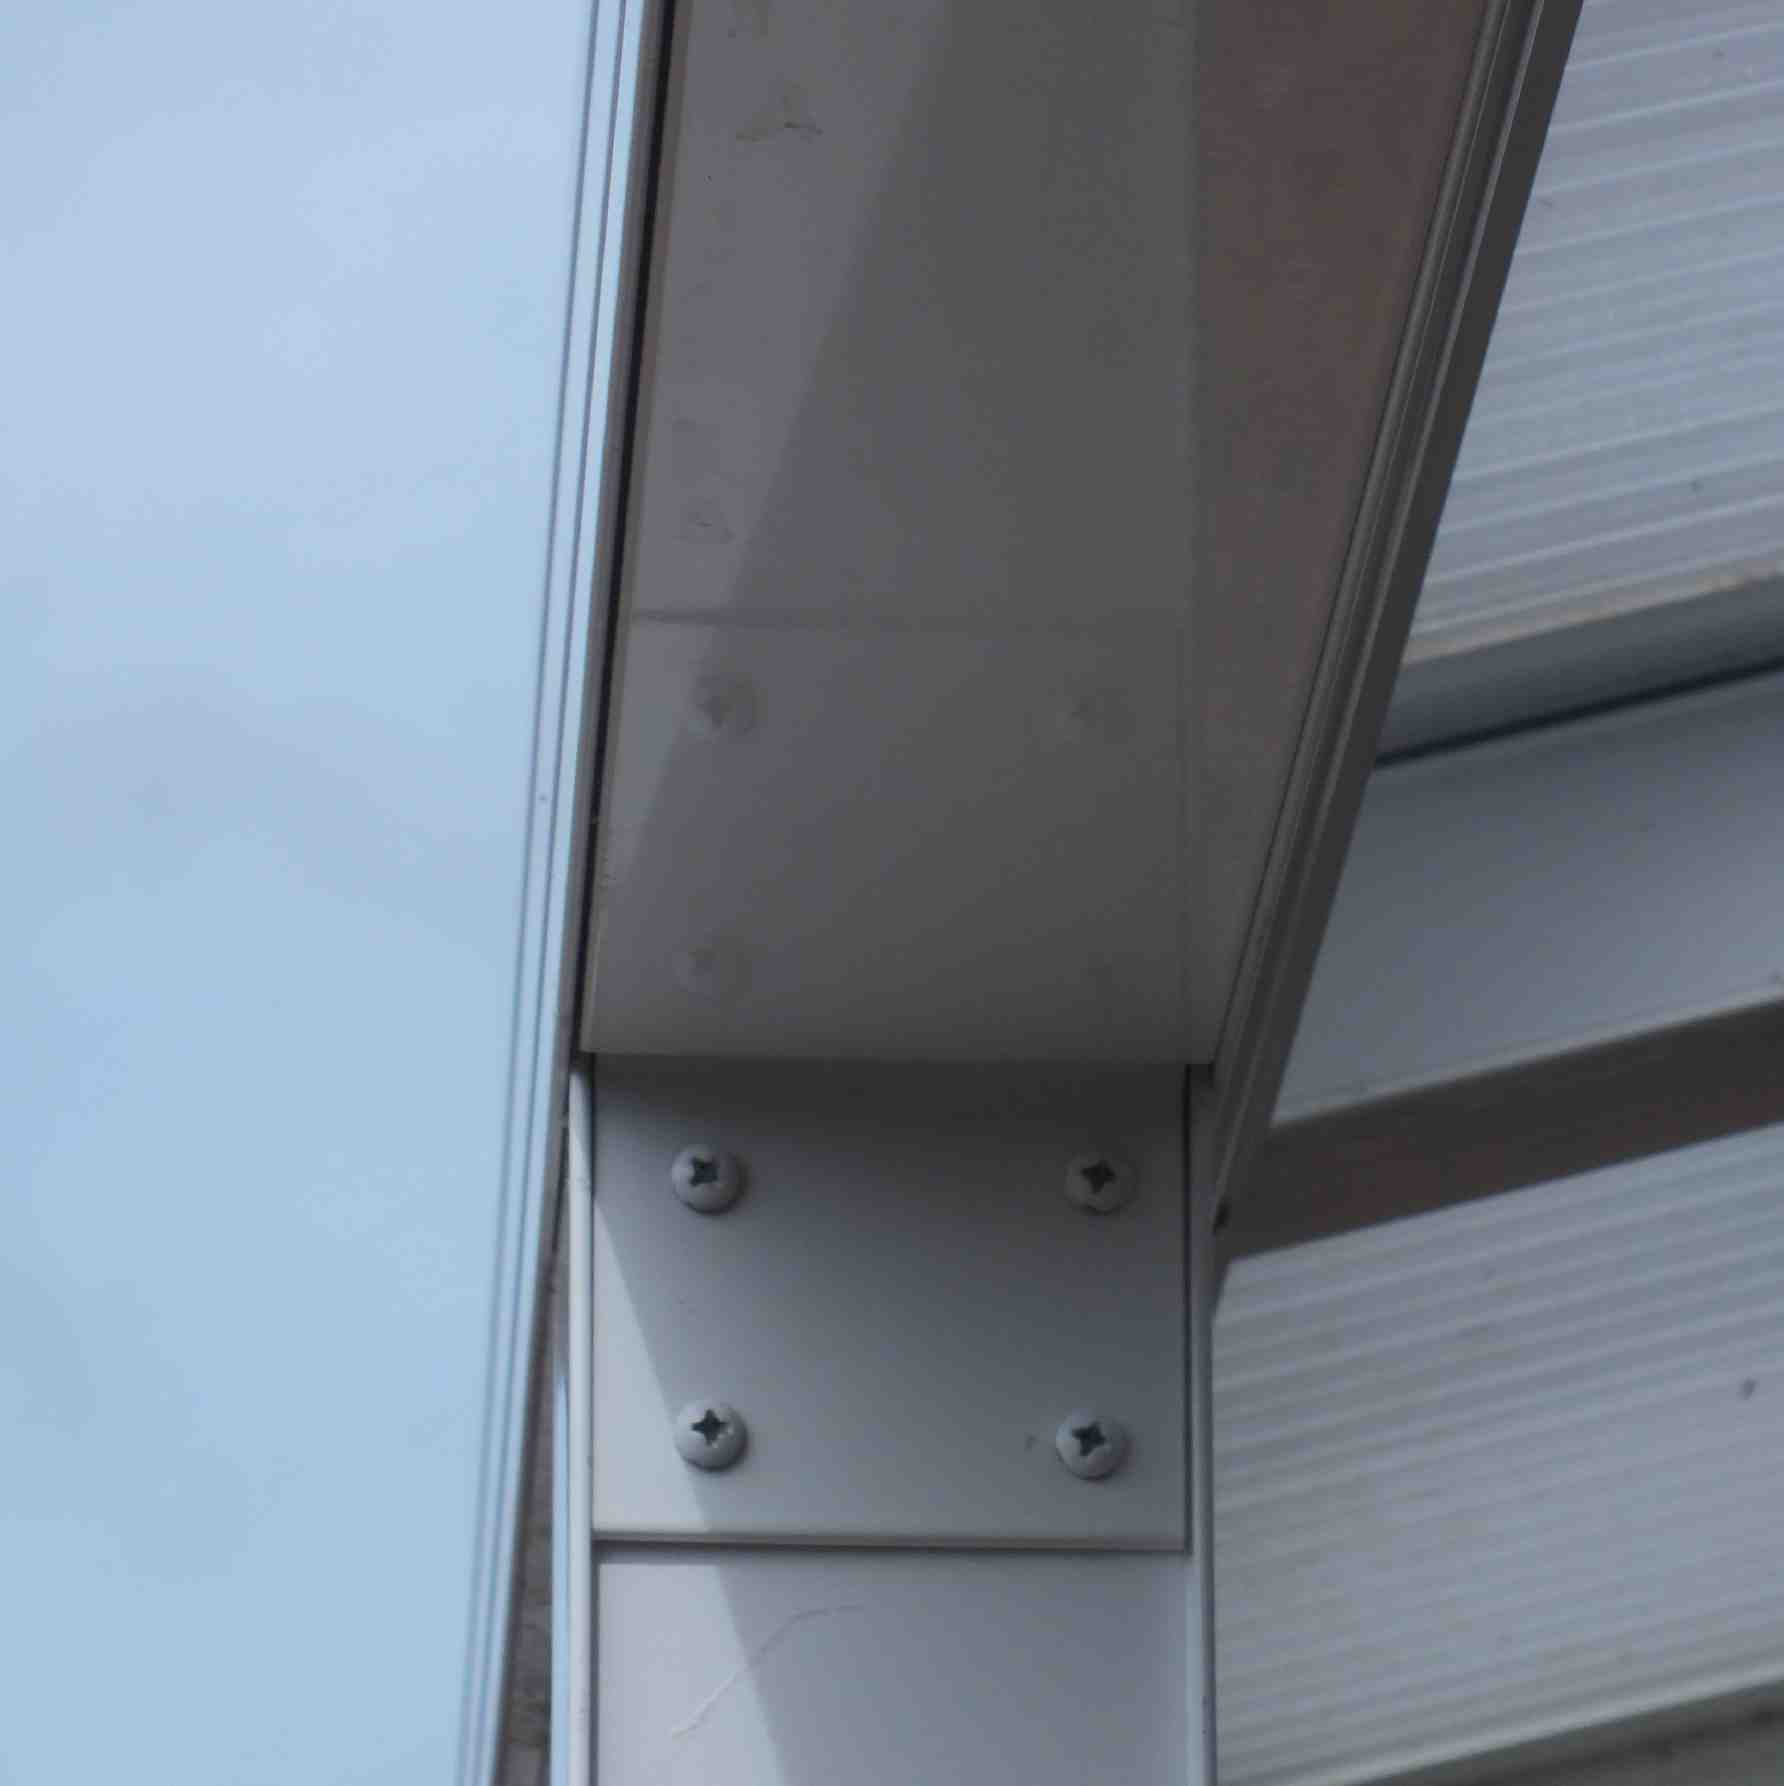 Affordable Omega Verandah with 16mm Polycarbonate Glazing - 4.2m (W) x 3.0m (P), (3) Supporting Posts